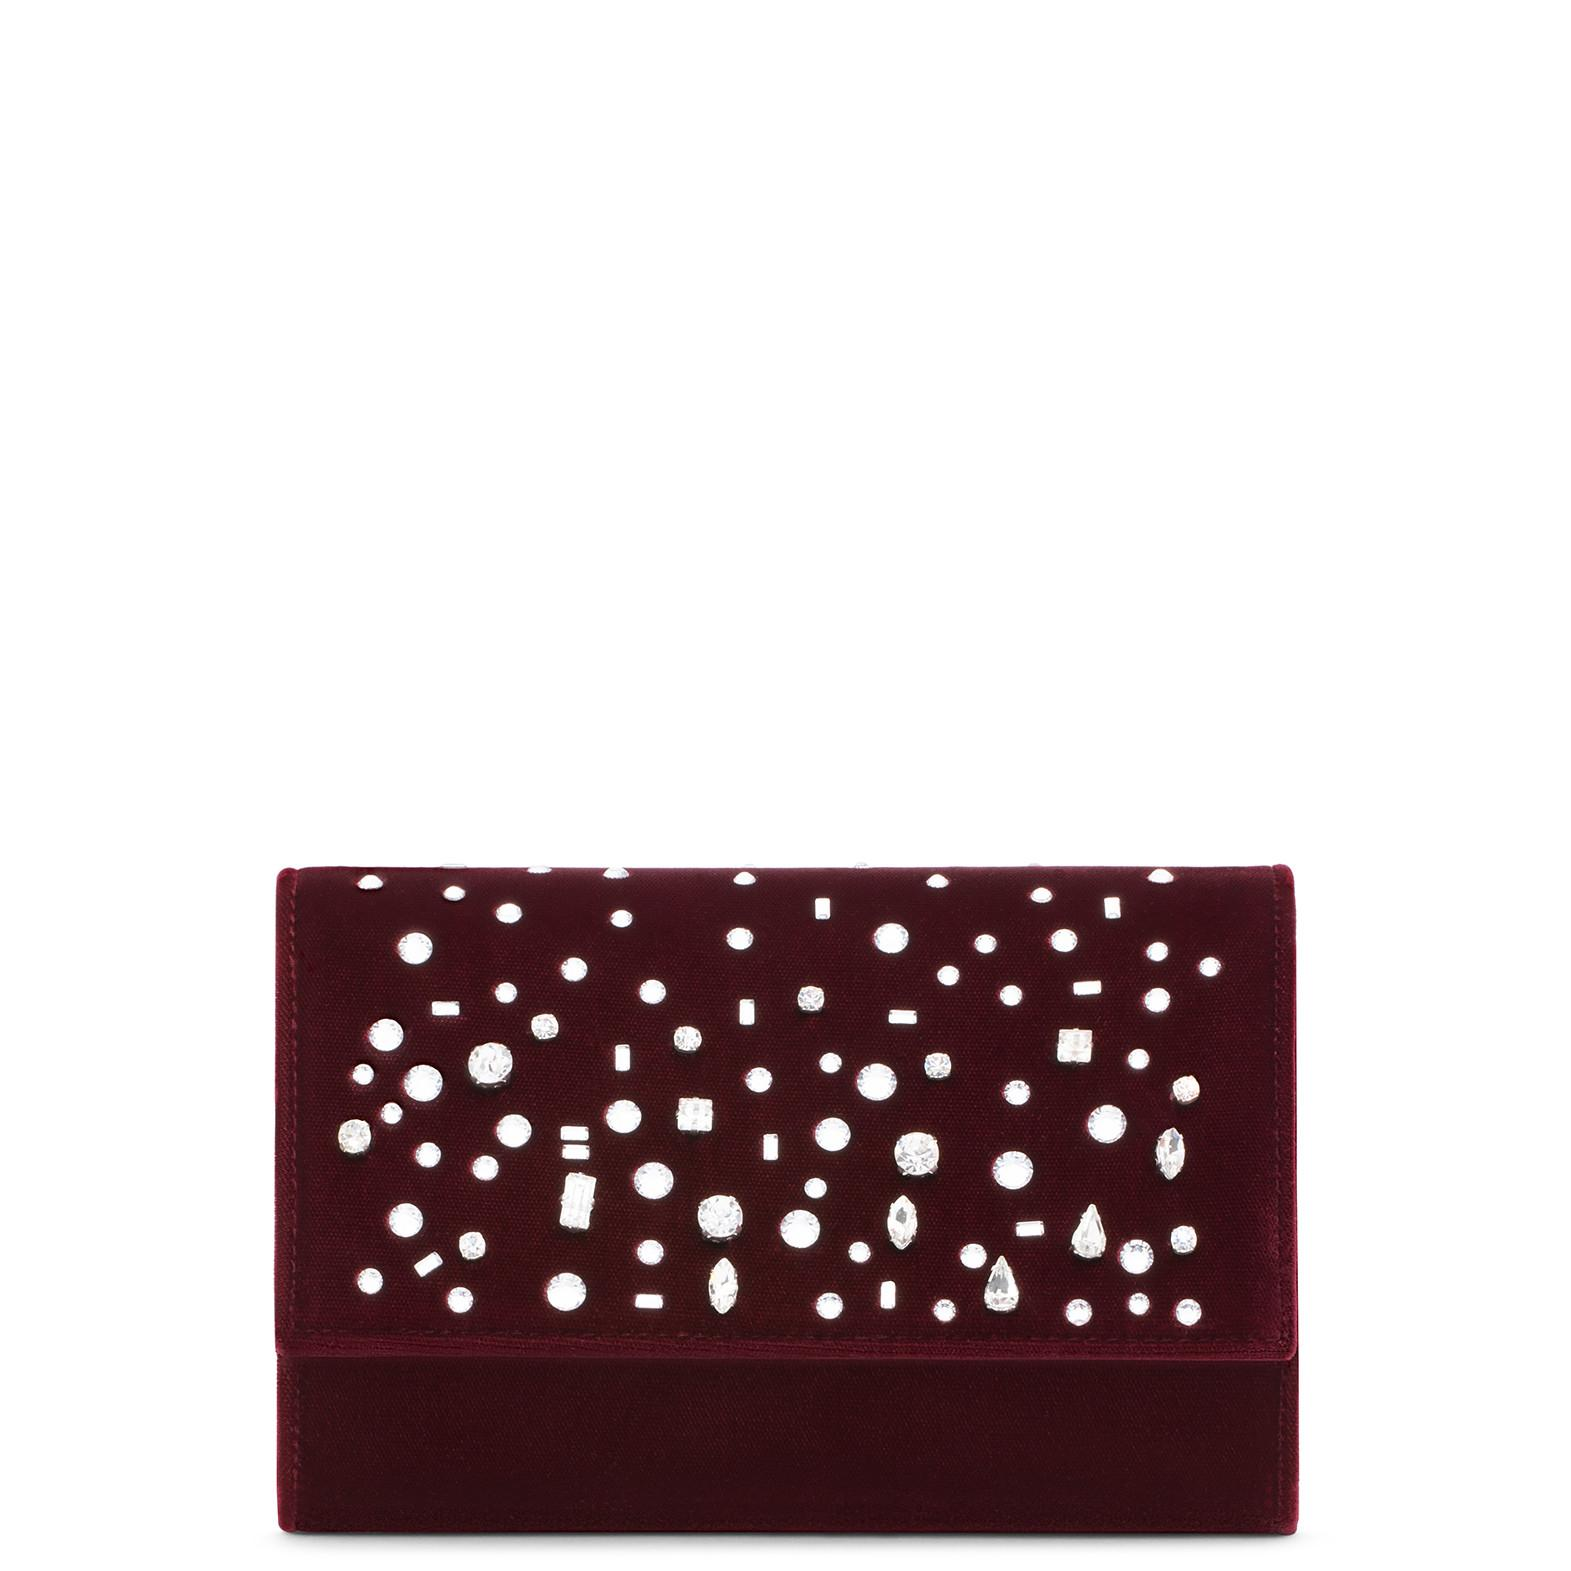 Giuseppe Zanotti - Burgundy Velvet Clutch With Crystals The Dazzling Kimmy In Red